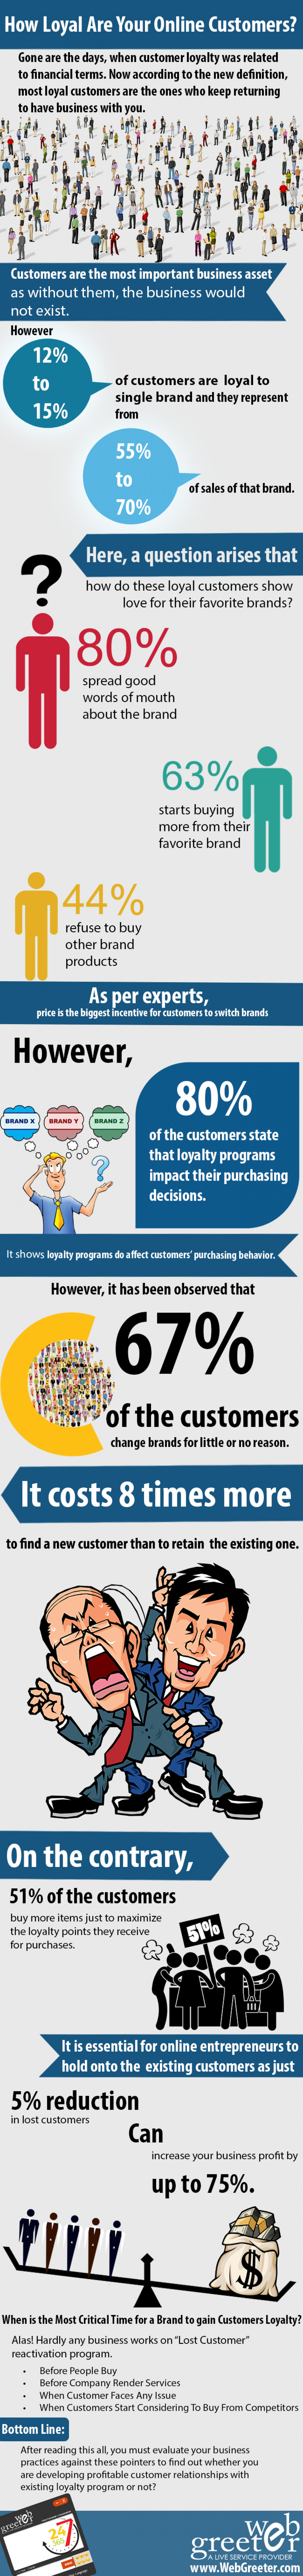 How Loyal Are Your Online Customers? Infographic